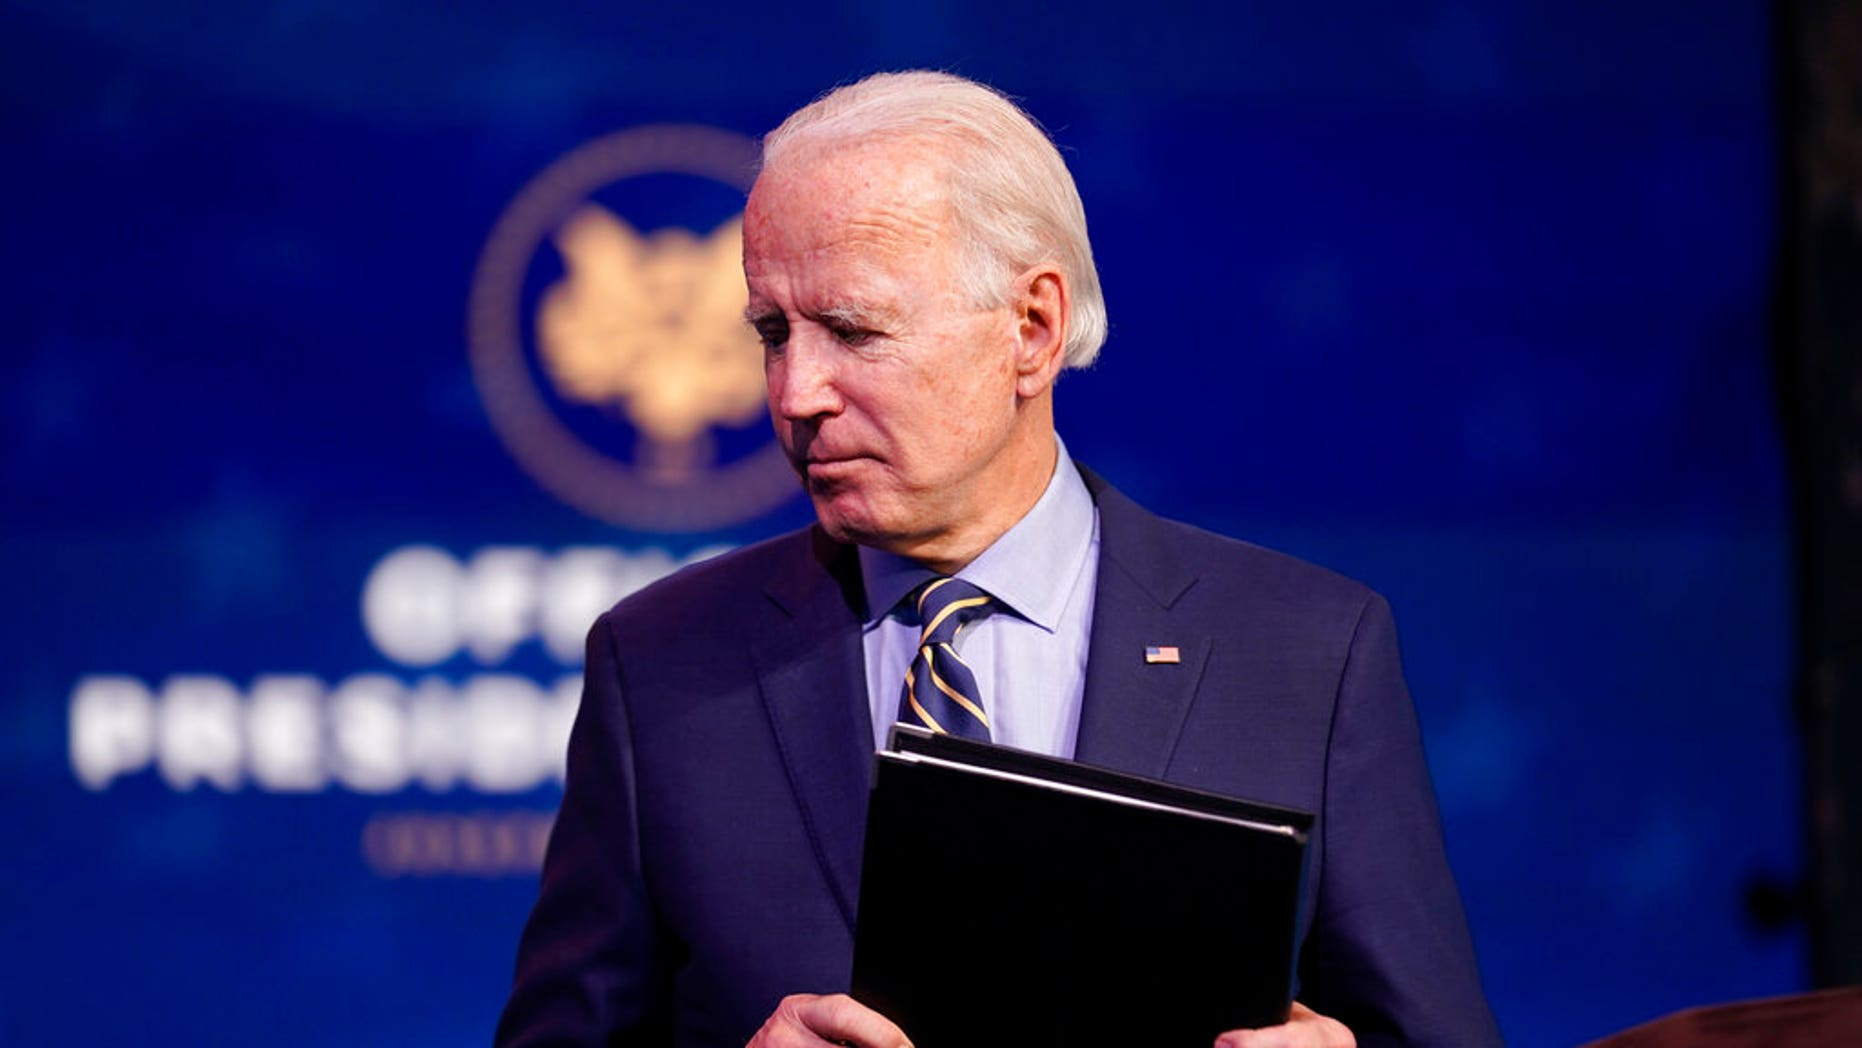 Biden to issue executive order halting any Trump 'midnight regulations'